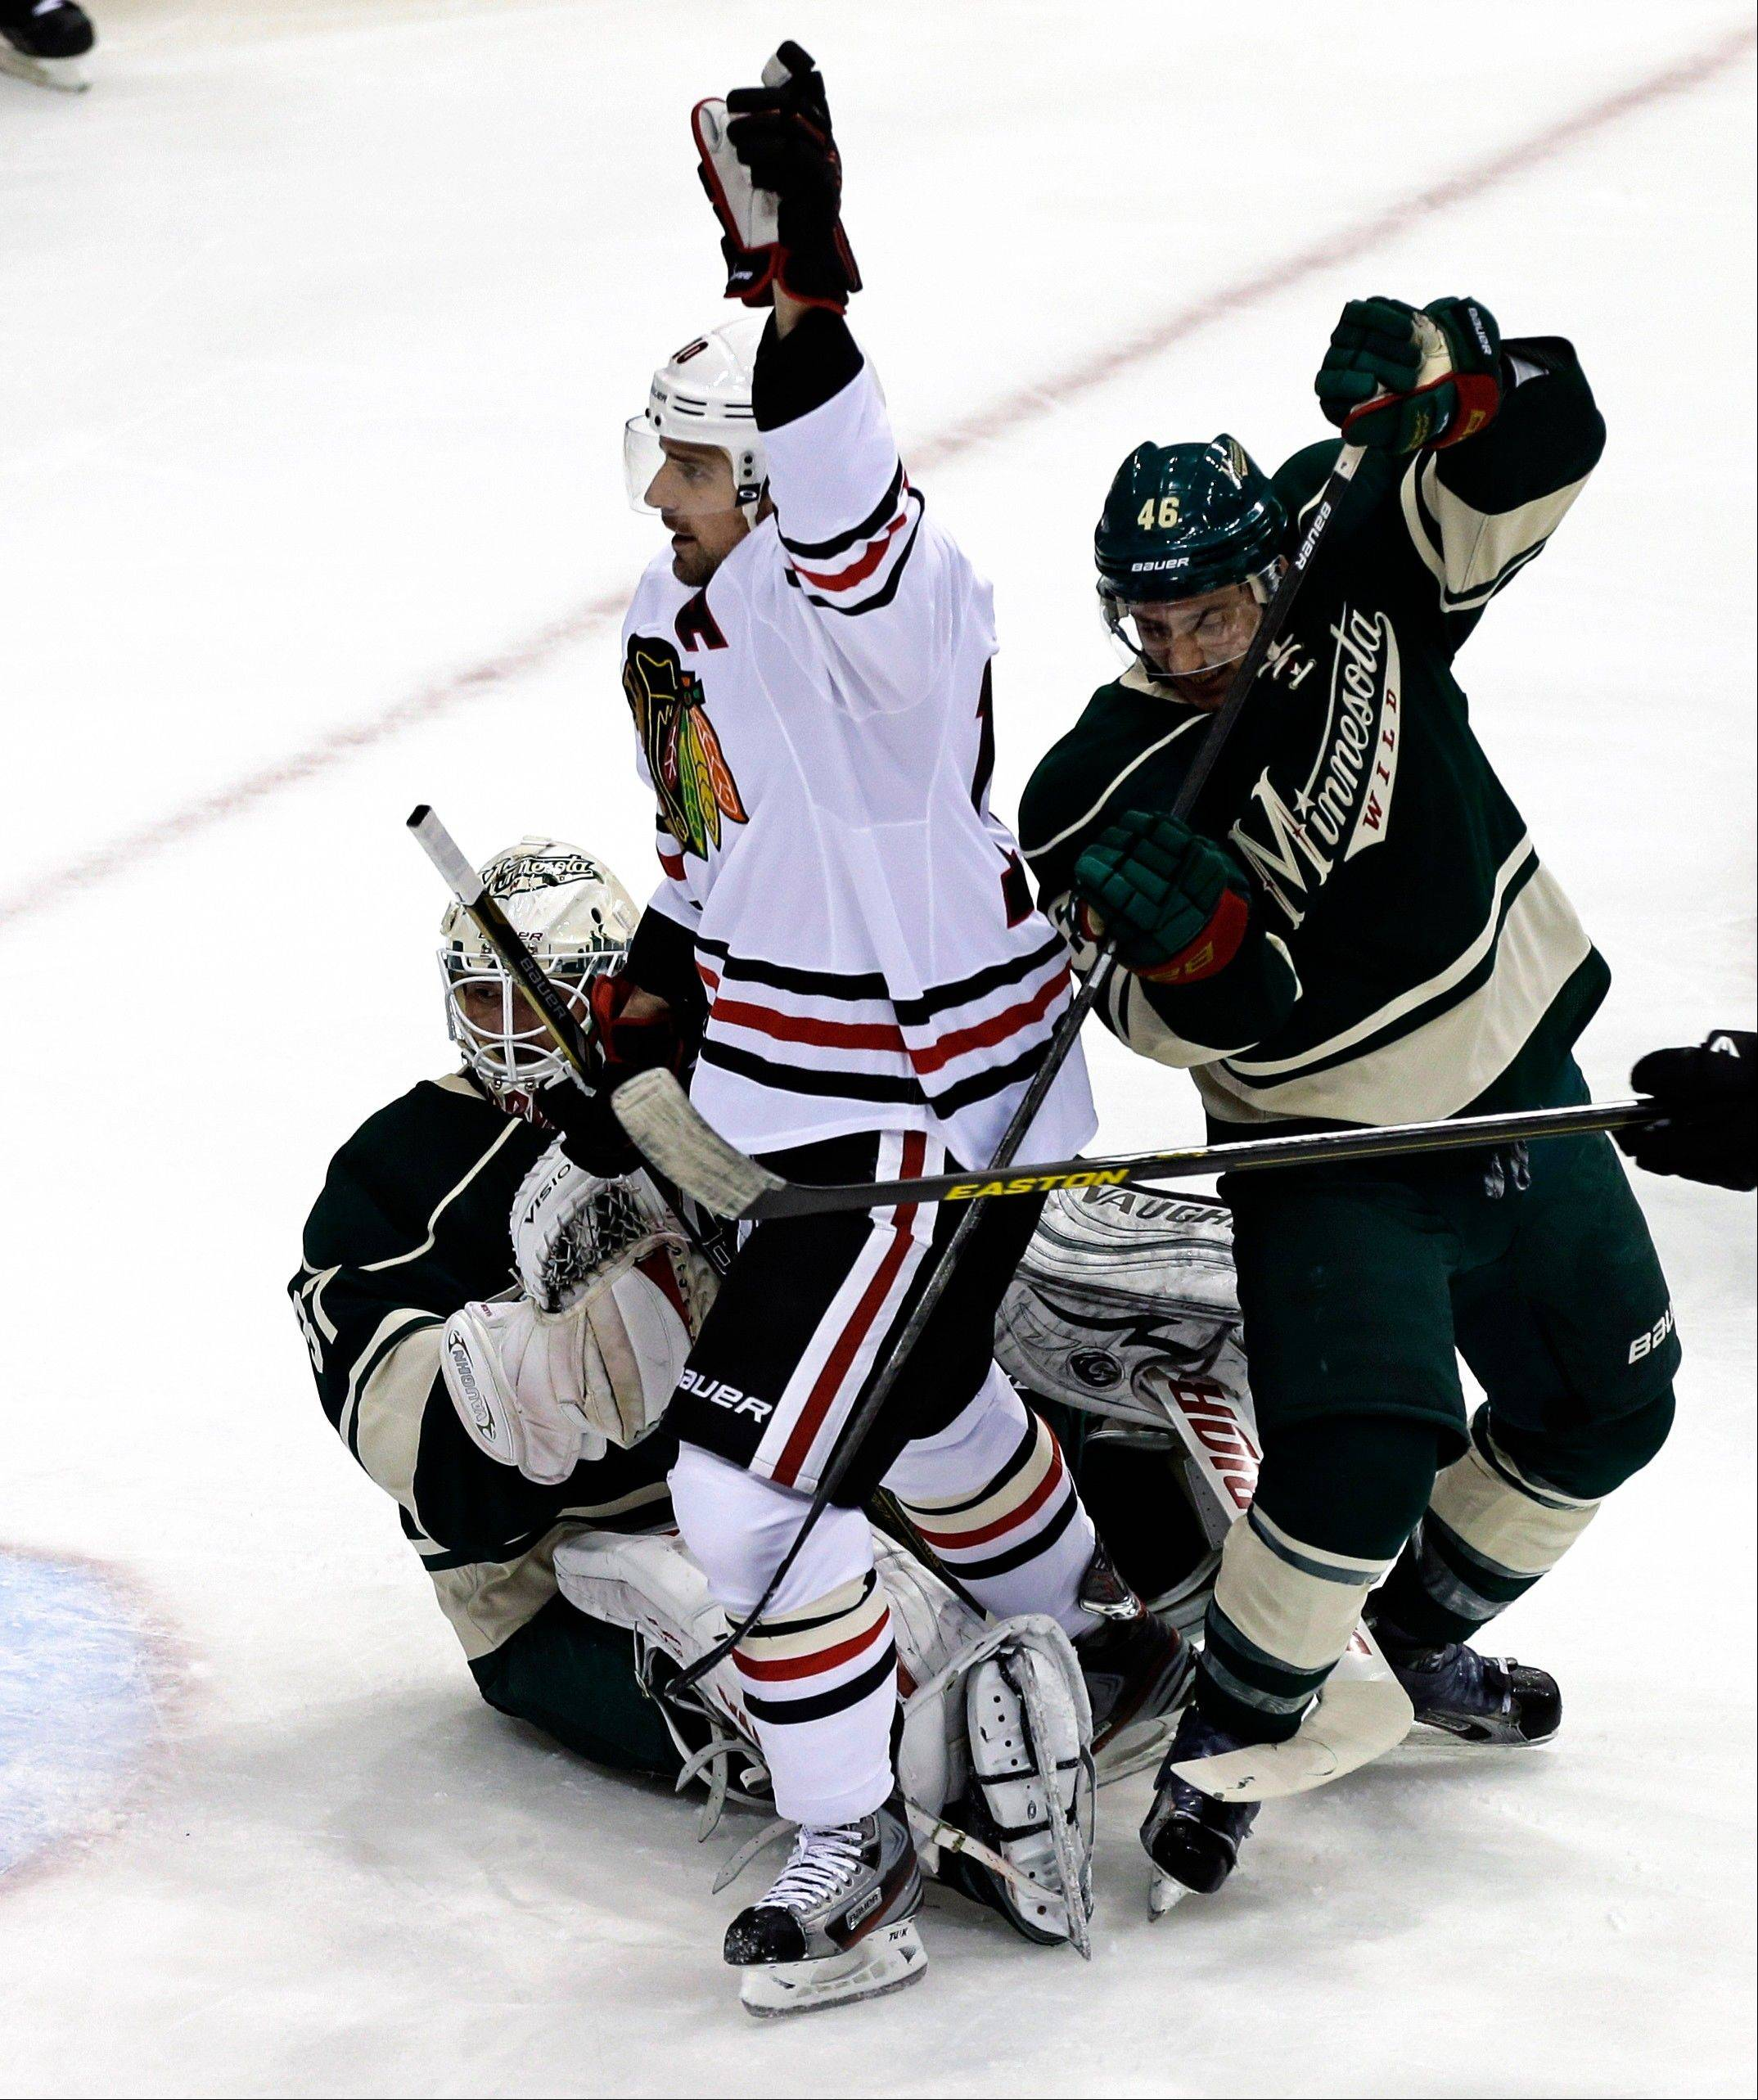 The Blackhawks� Patrick Sharp, middle, celebrates his goal off Minnesota Wild goalie Josh Harding in the first period of Game 4 on Tuesday night. At right is Wild�s Jared Spurgeon.